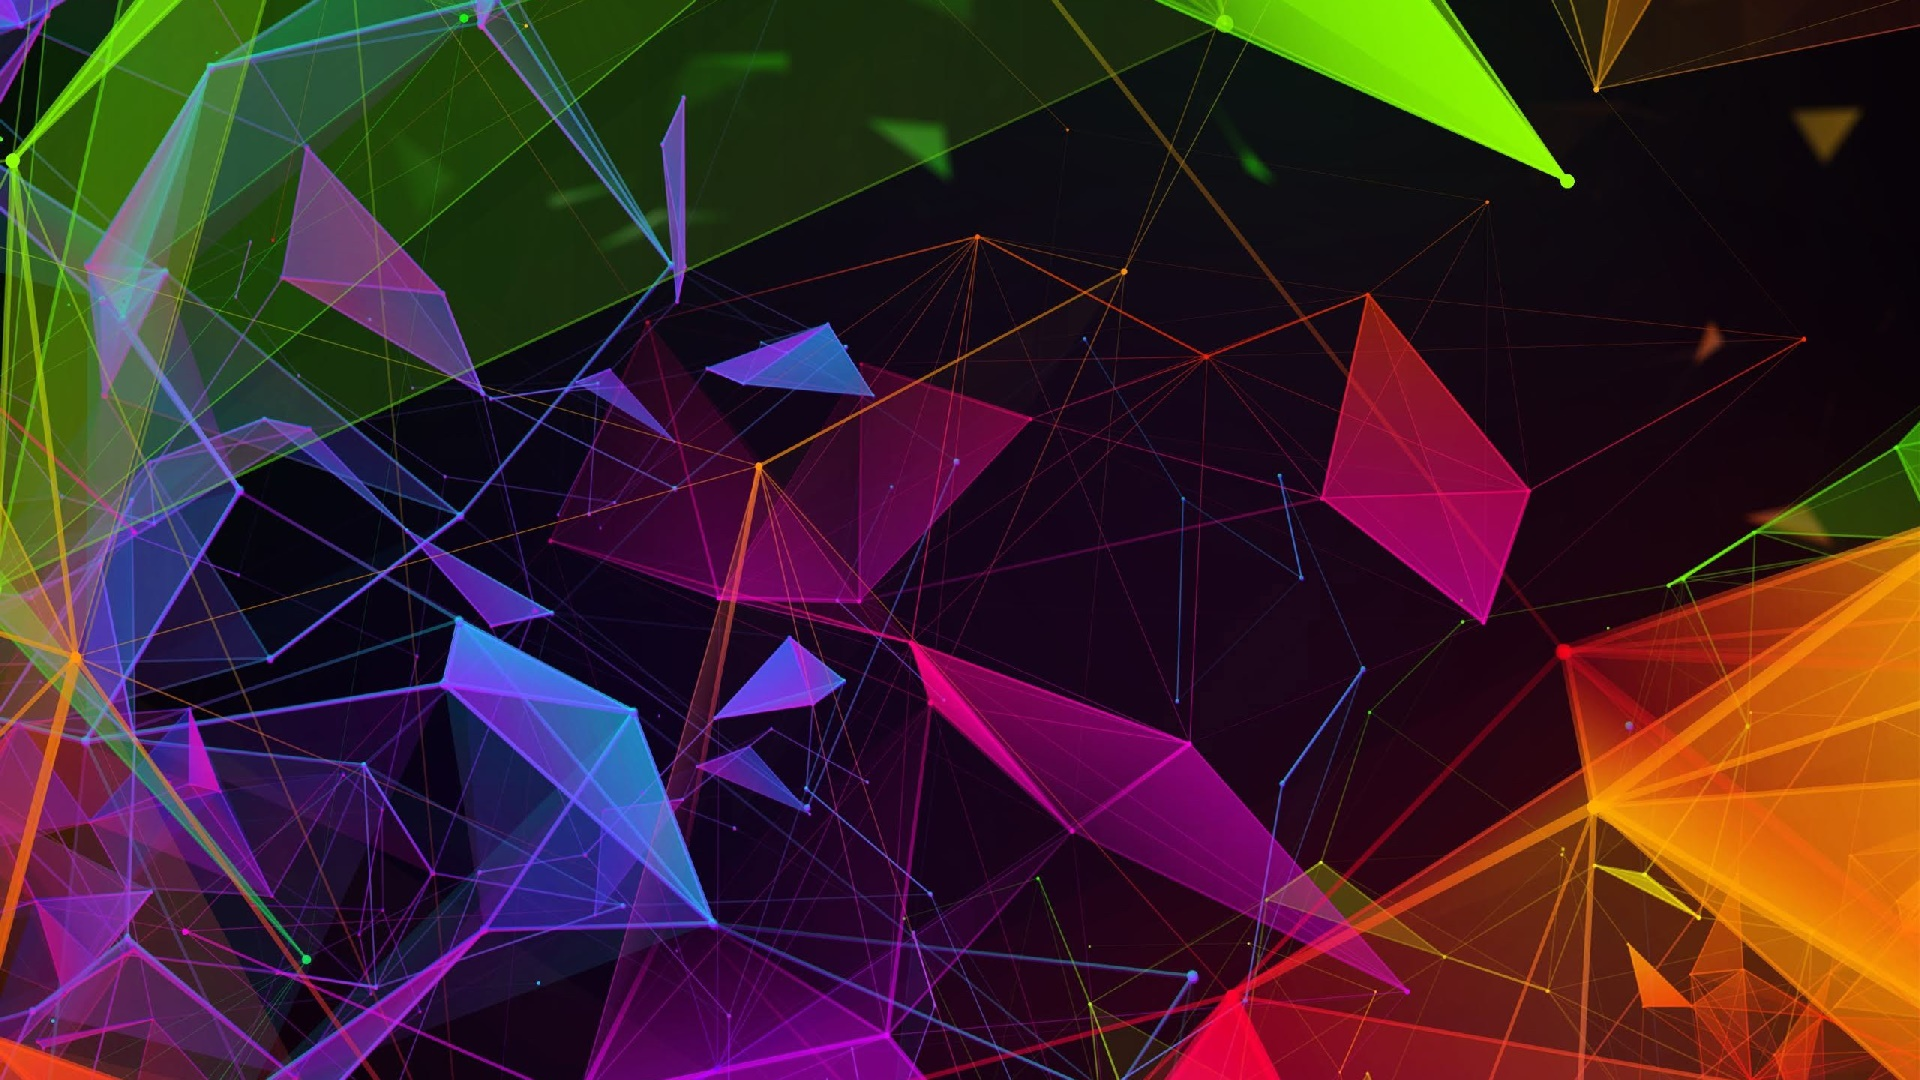 Colorful geometric art wallpaper